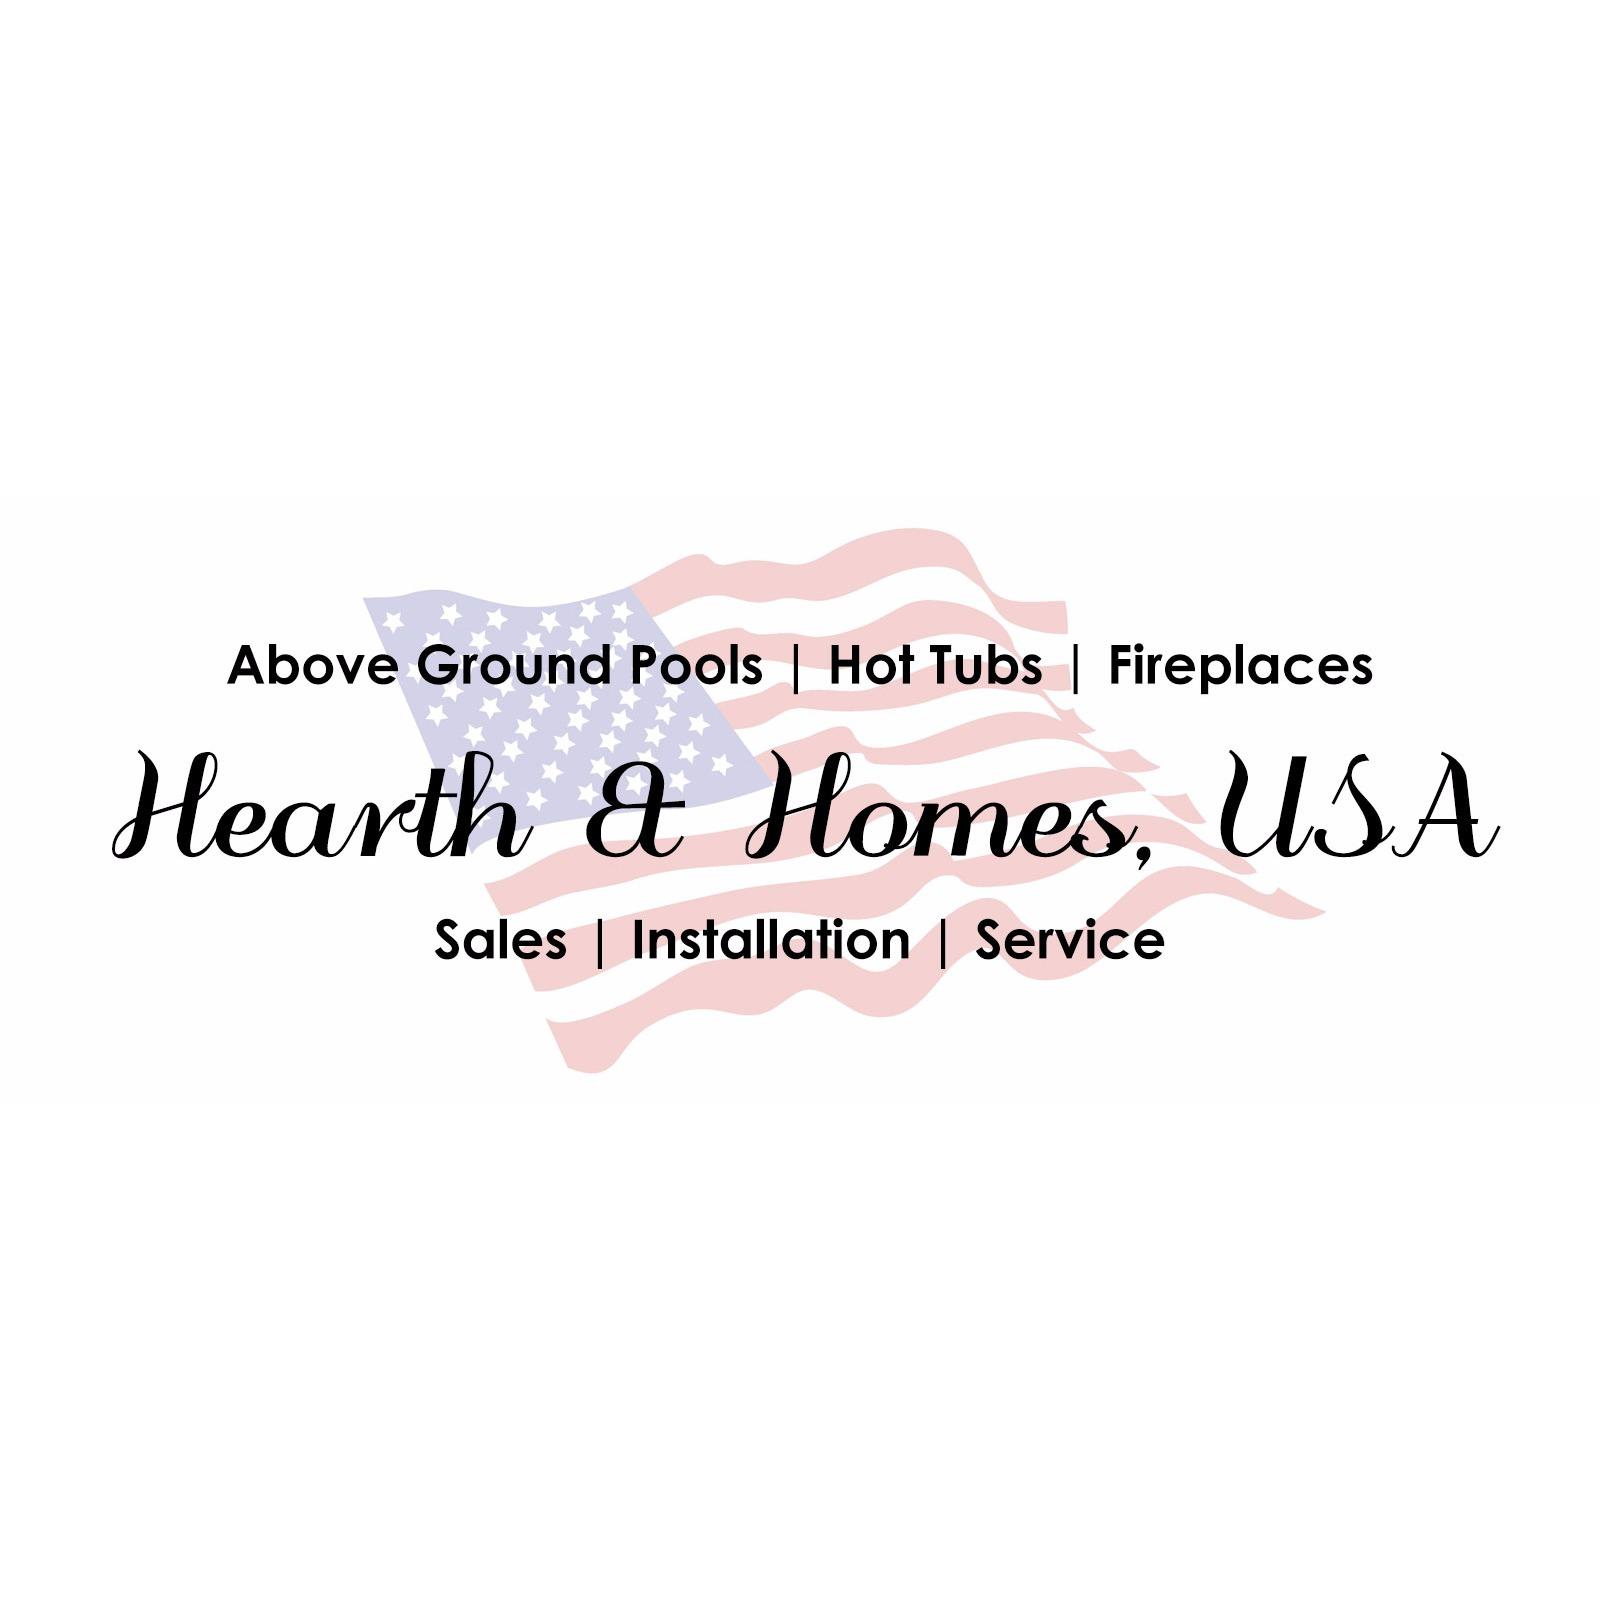 Hearth & Homes, USA